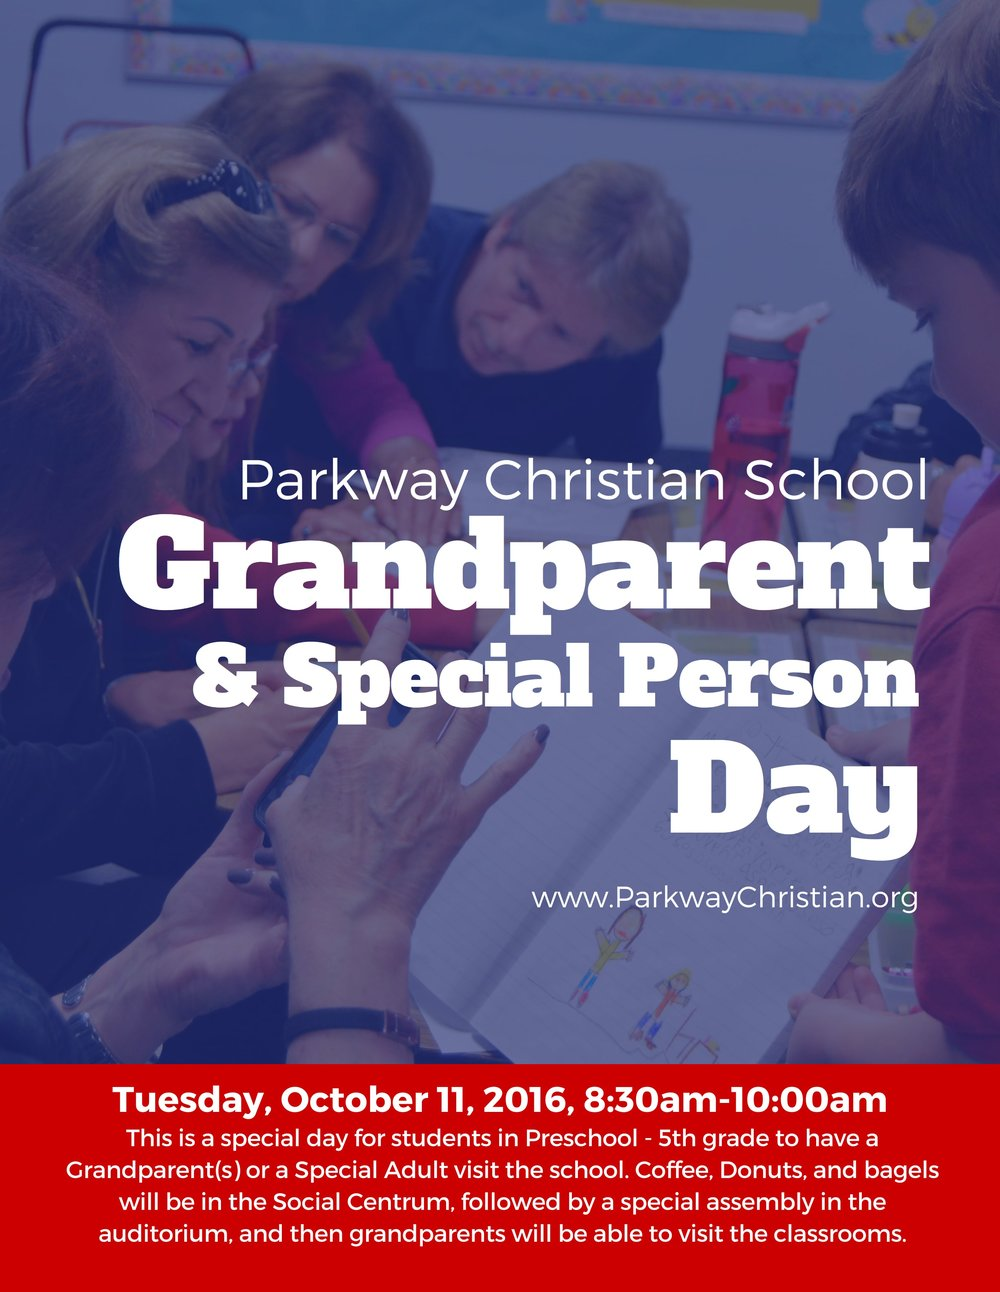 Parkway Christian School Grandparent & Special Person Day